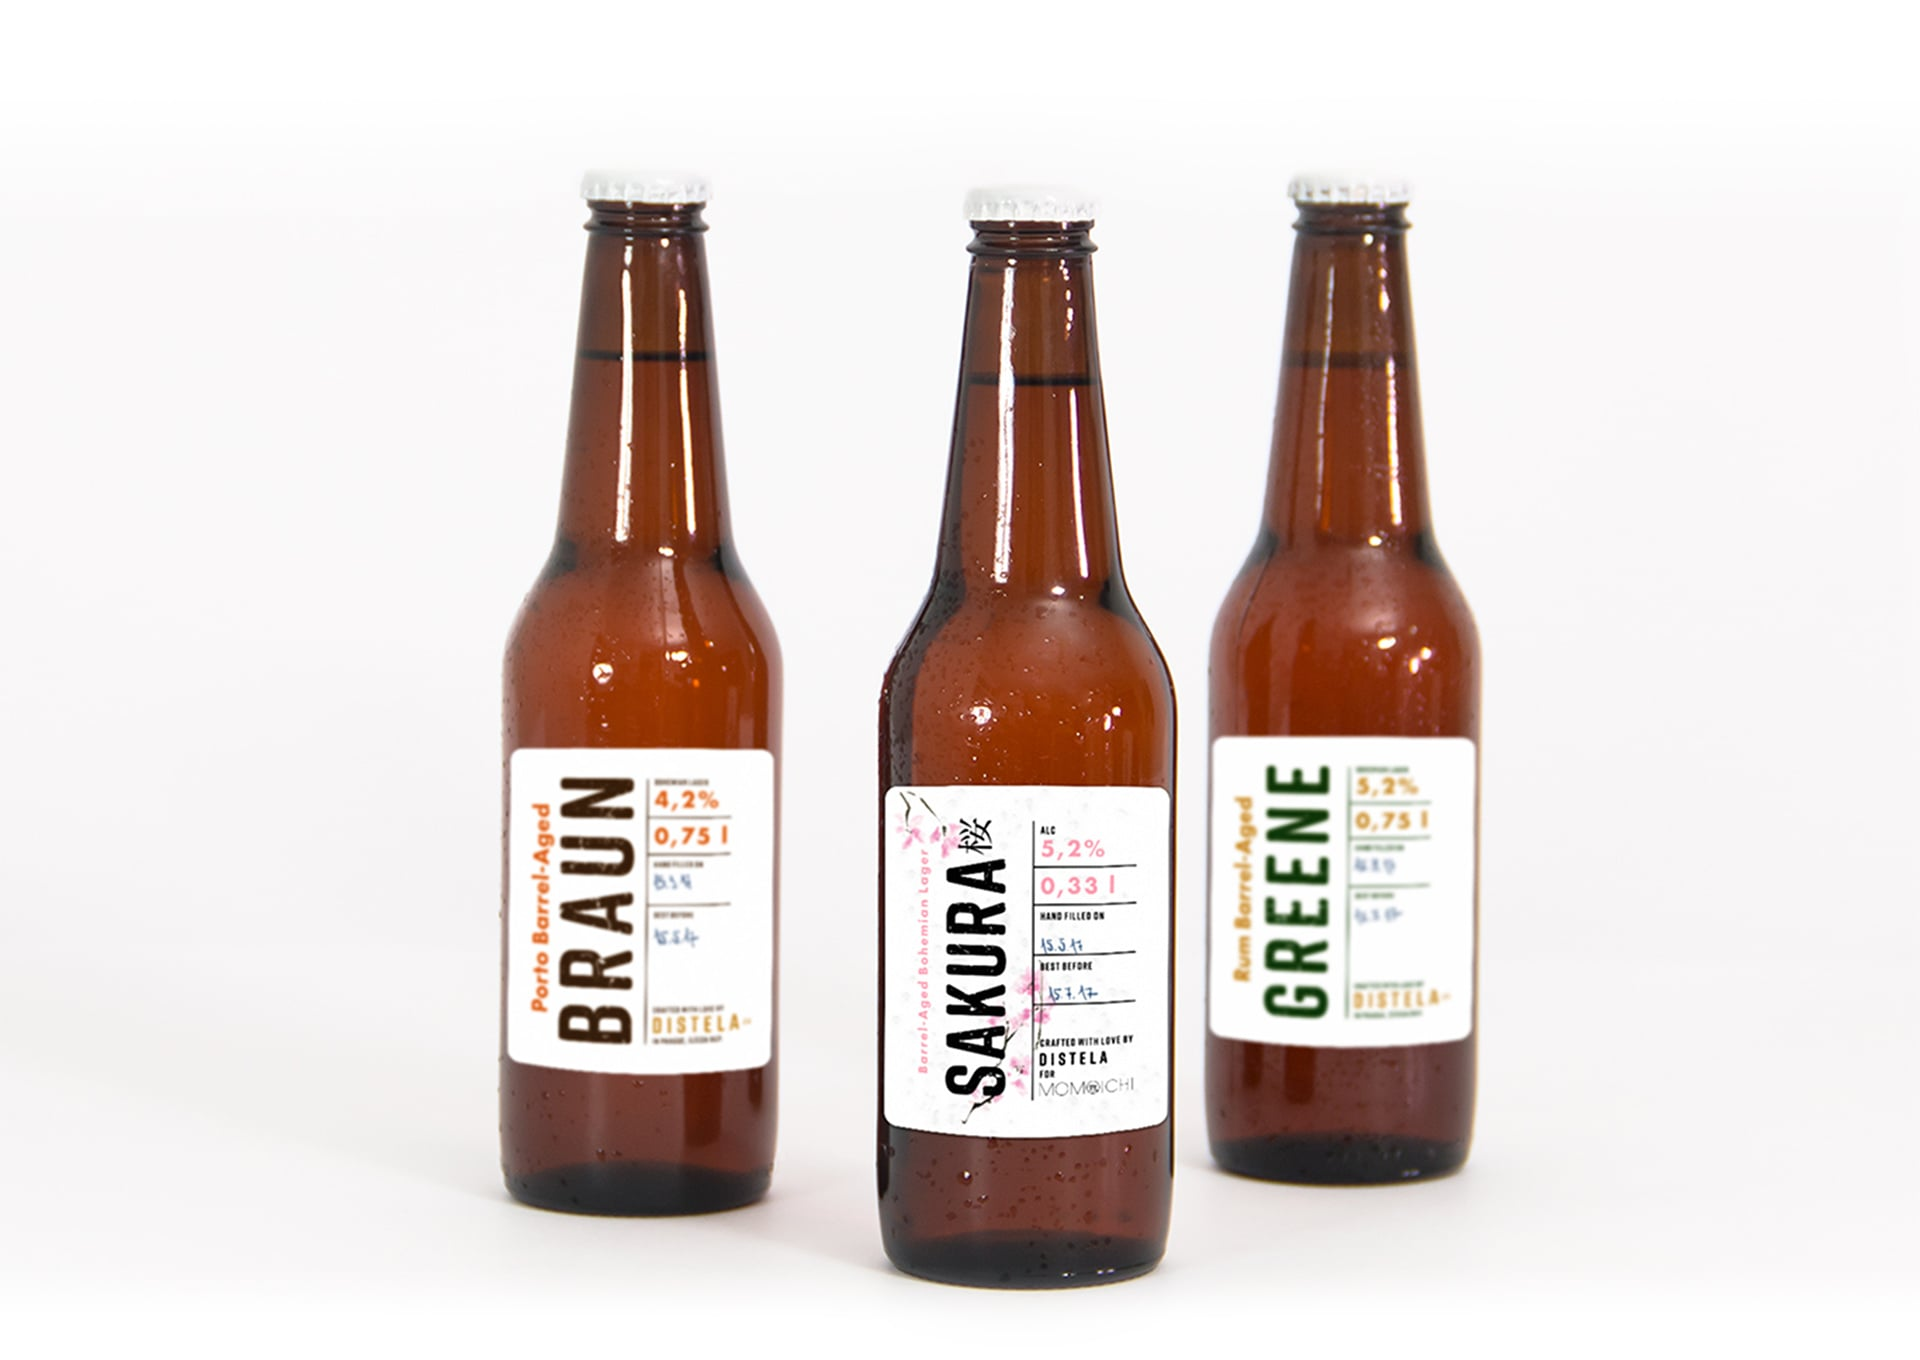 A Modern Product With A Taste Of Old Technologies Needed A Modern Logotype.  Their Visual Identity Is Covering All The Hand Drawn Illustrations, Beer  Labels, ...